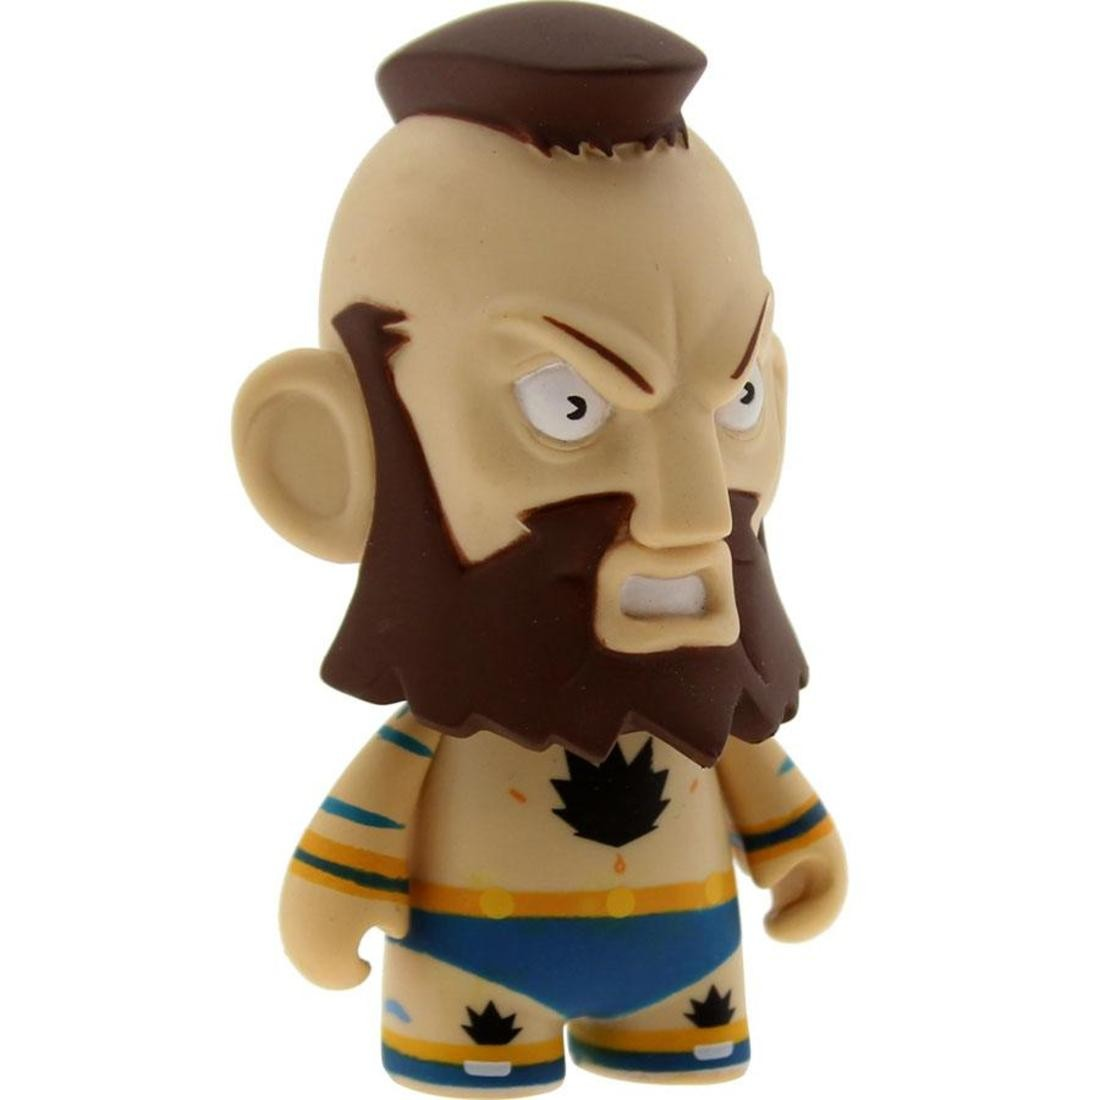 Kidrobot Street Fighter 3 Inch Mini Series Zangief Figure - 1/20 Ratio (blue)